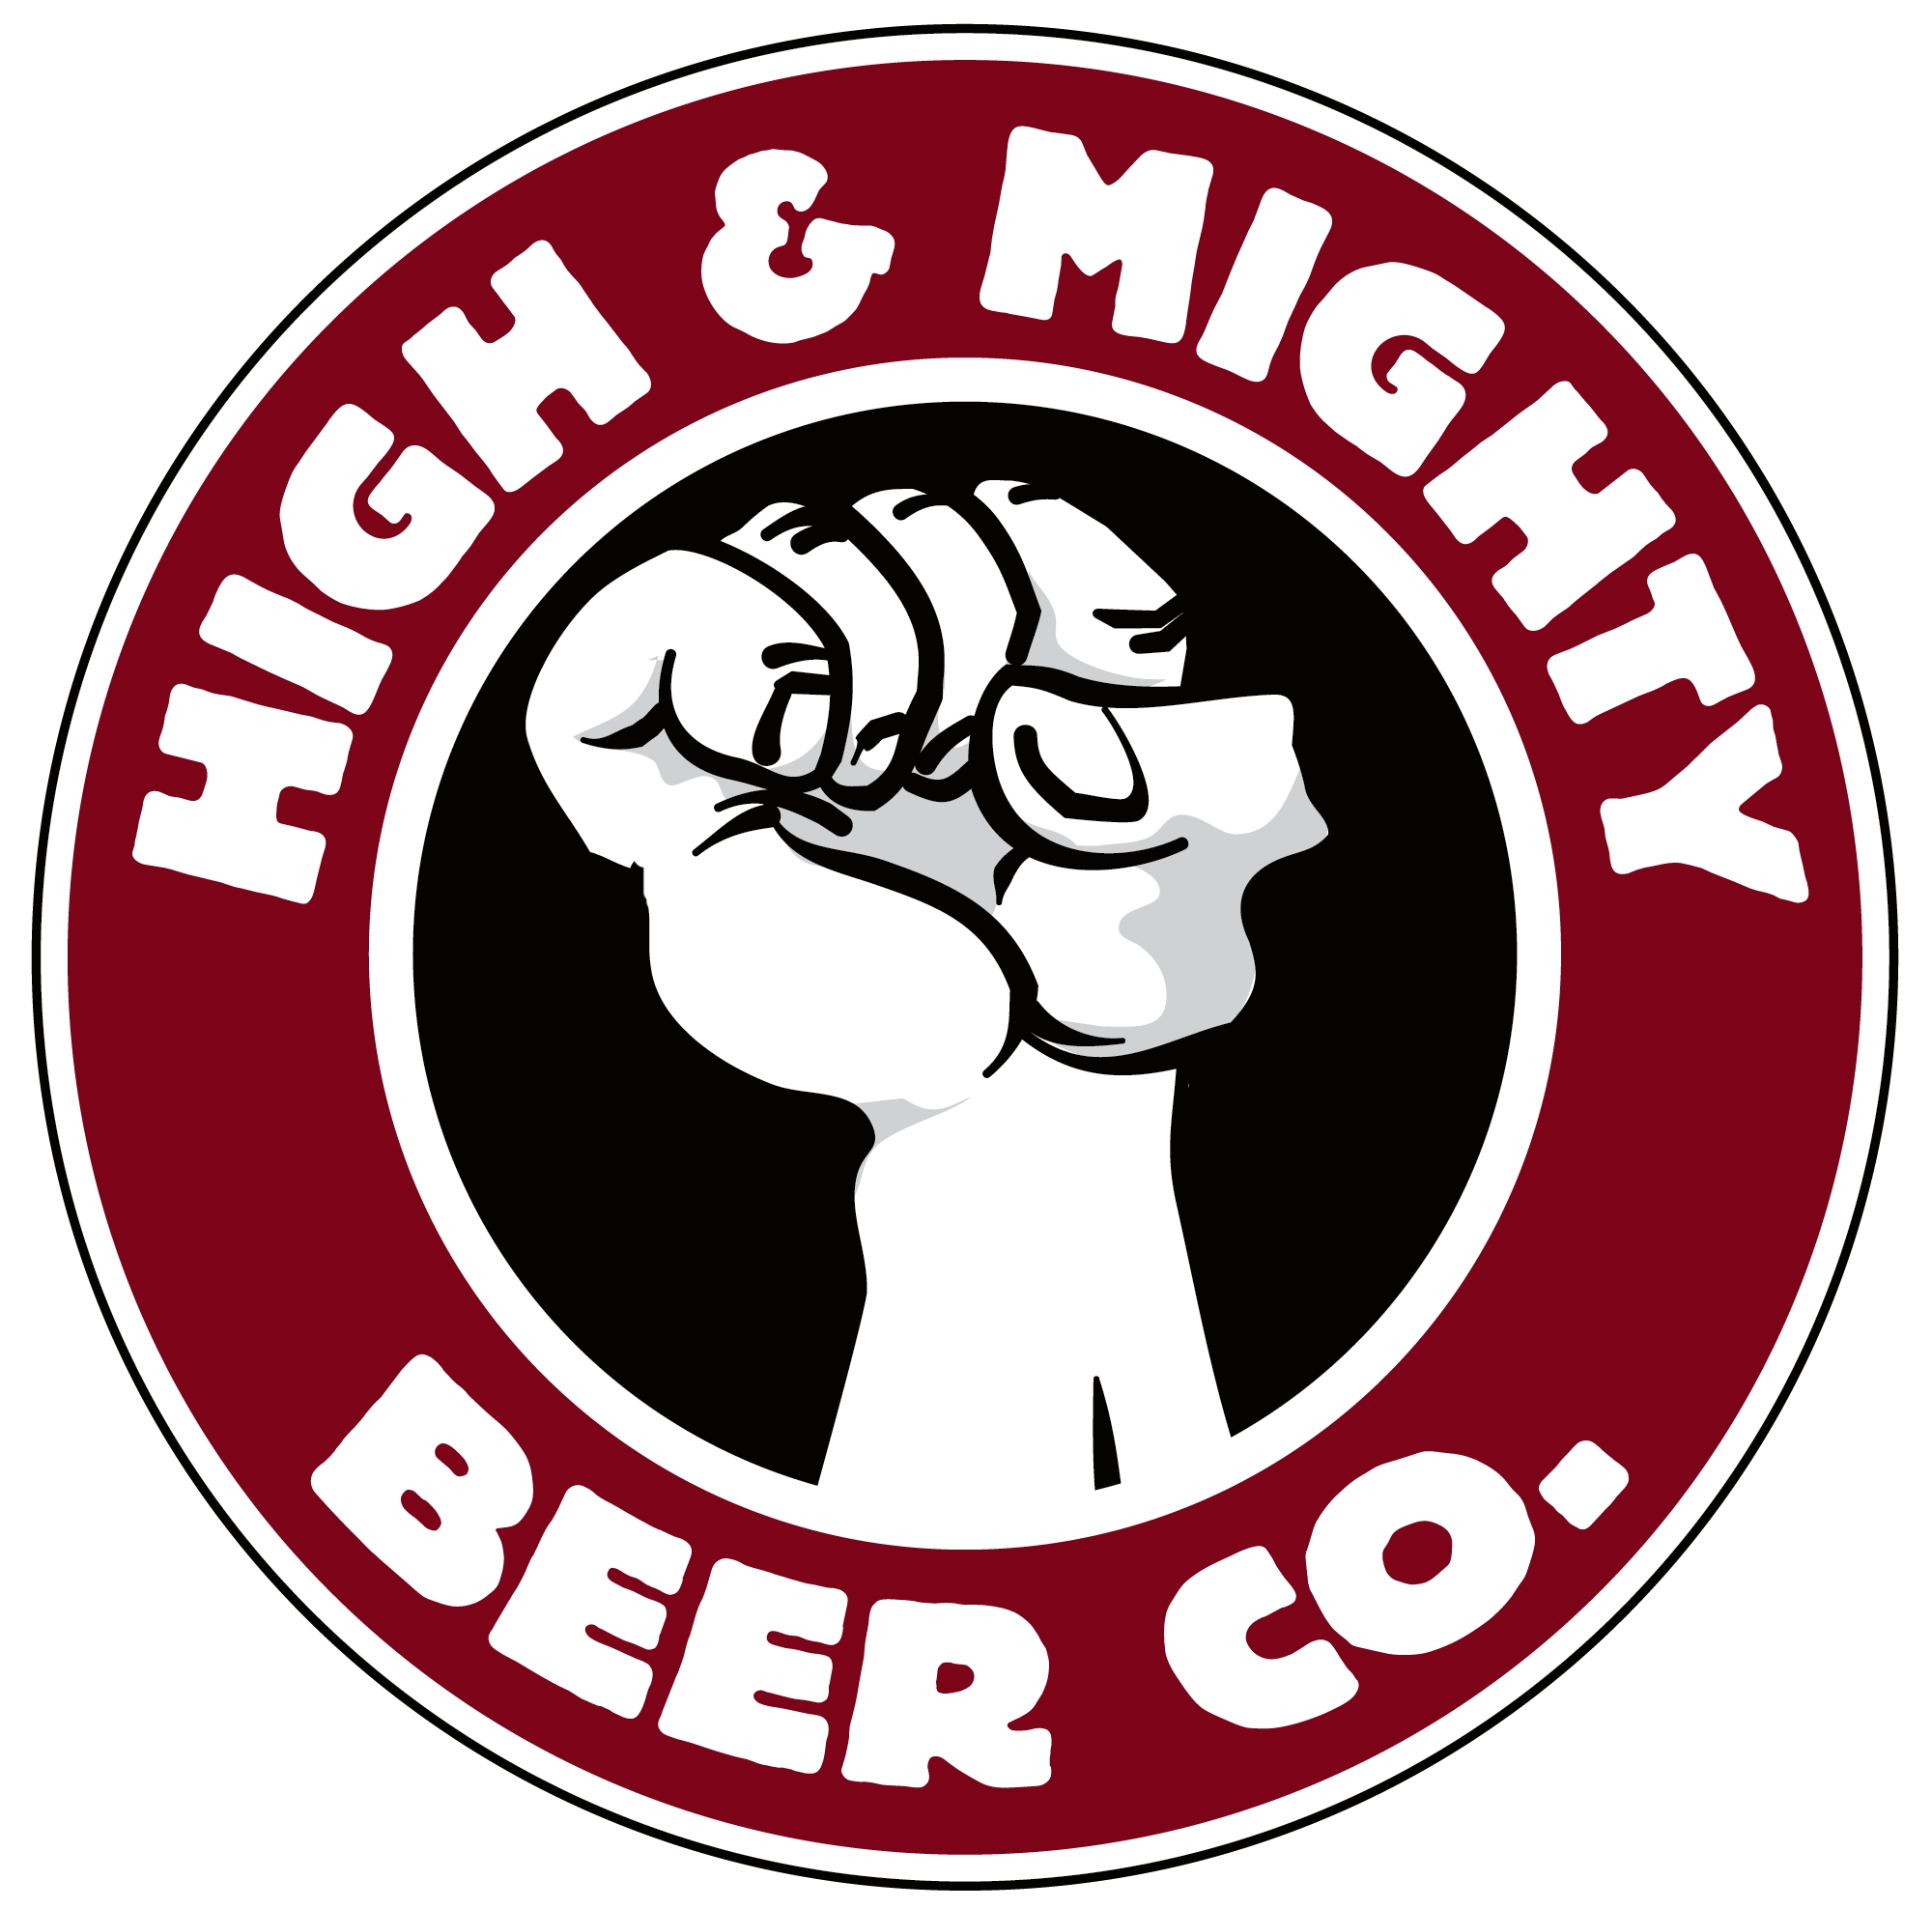 THE BEER NUT: Less is the best at High & Mighty (By Norman Miller